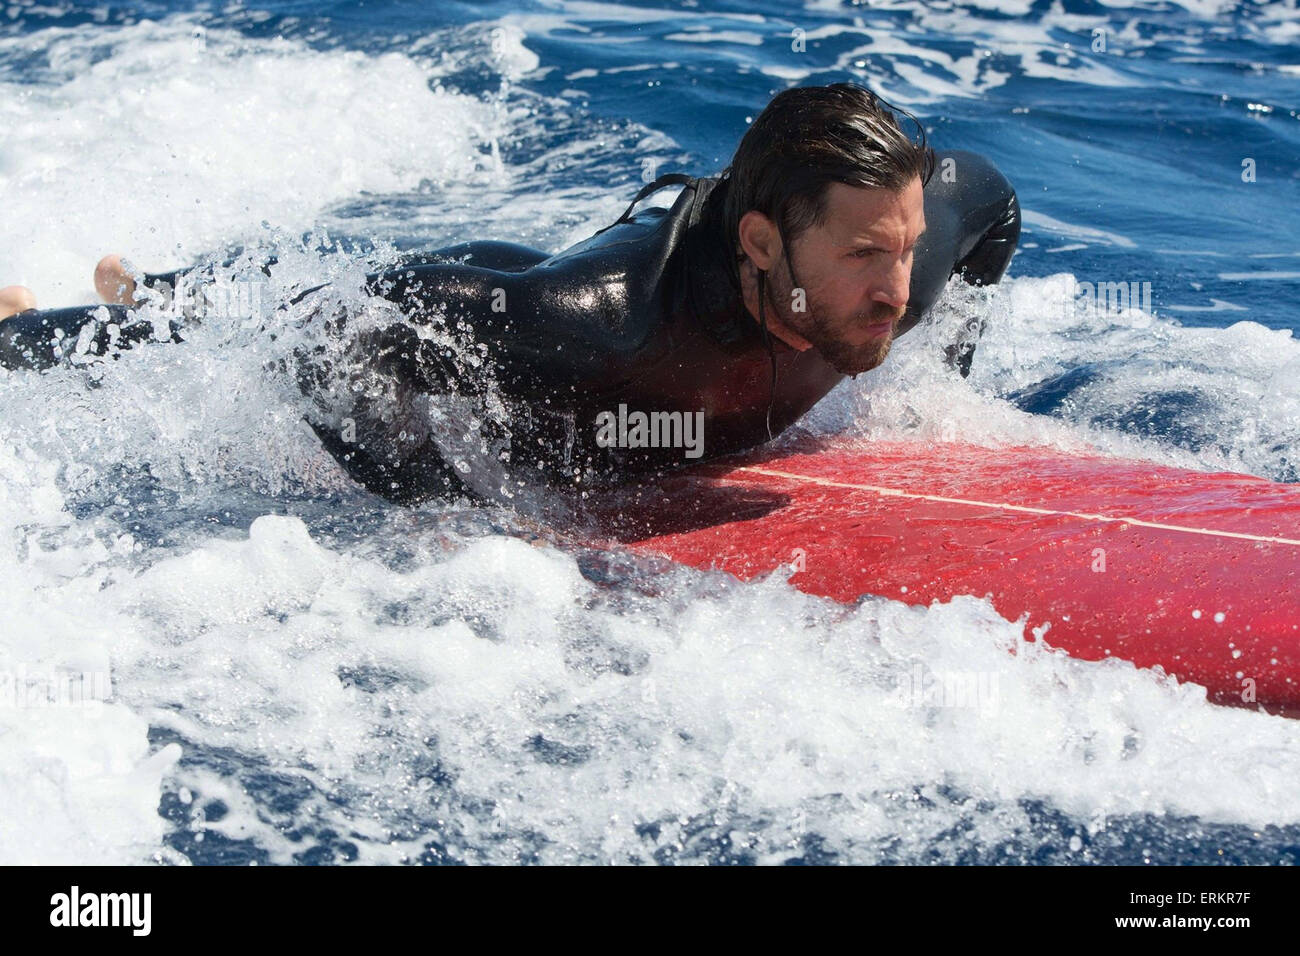 POINT BREAK (2015) EDGAR RAMIREZ ERICSON CORE (DIR) - Stock Image